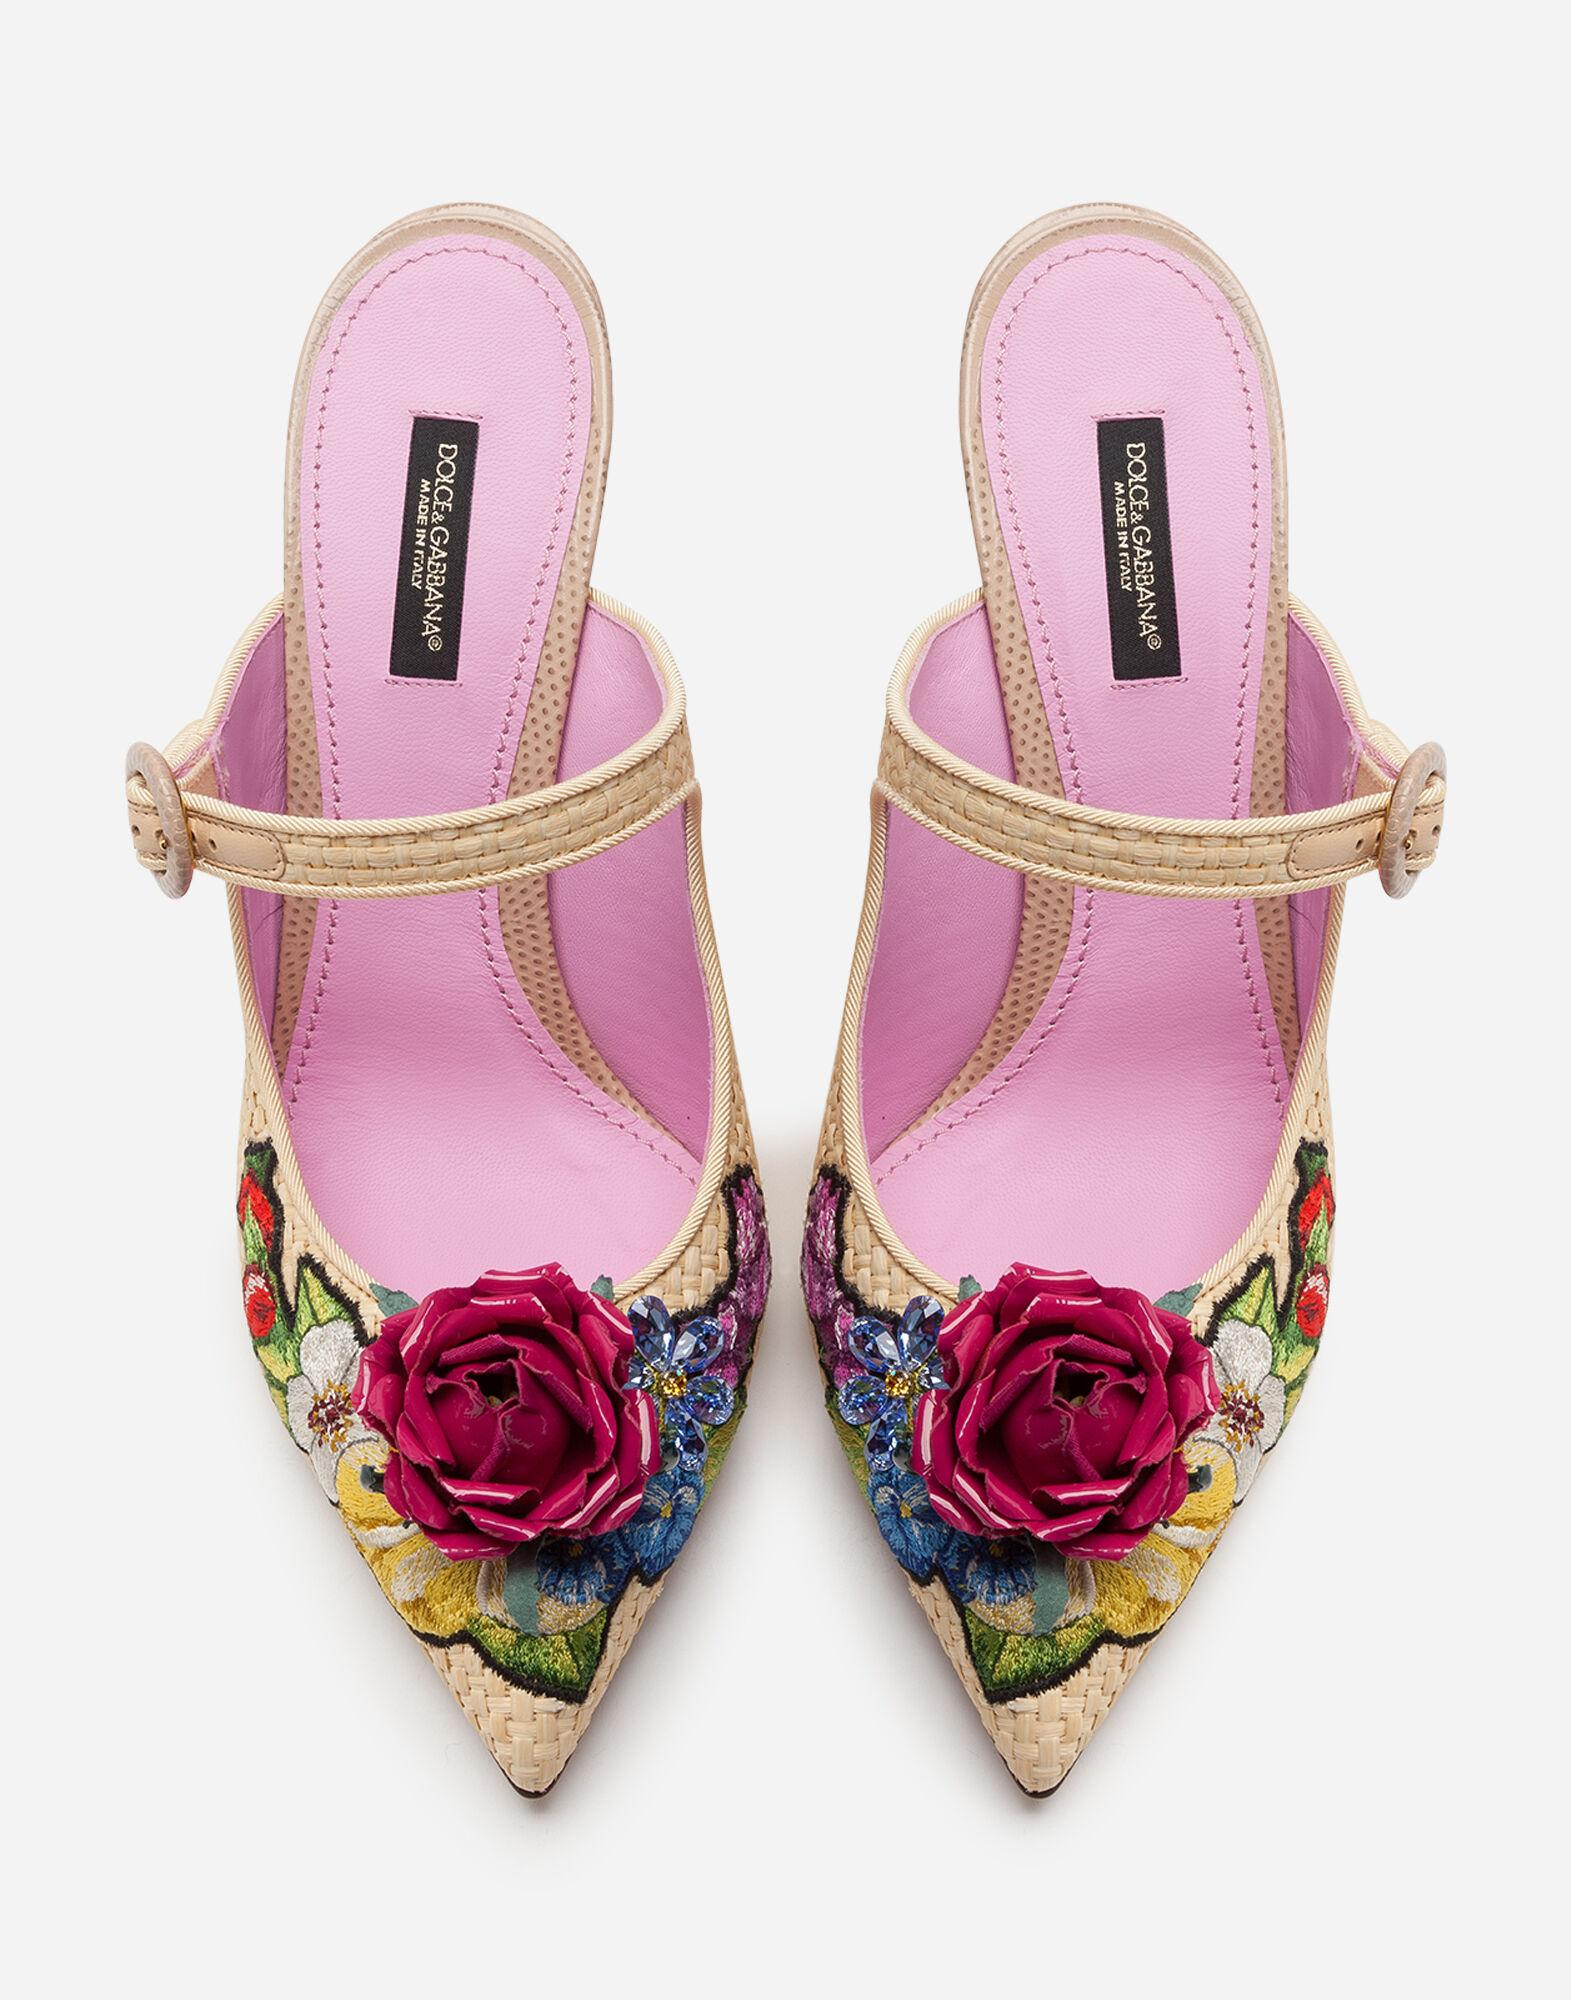 Braided raffia mules with floral embroidery 3